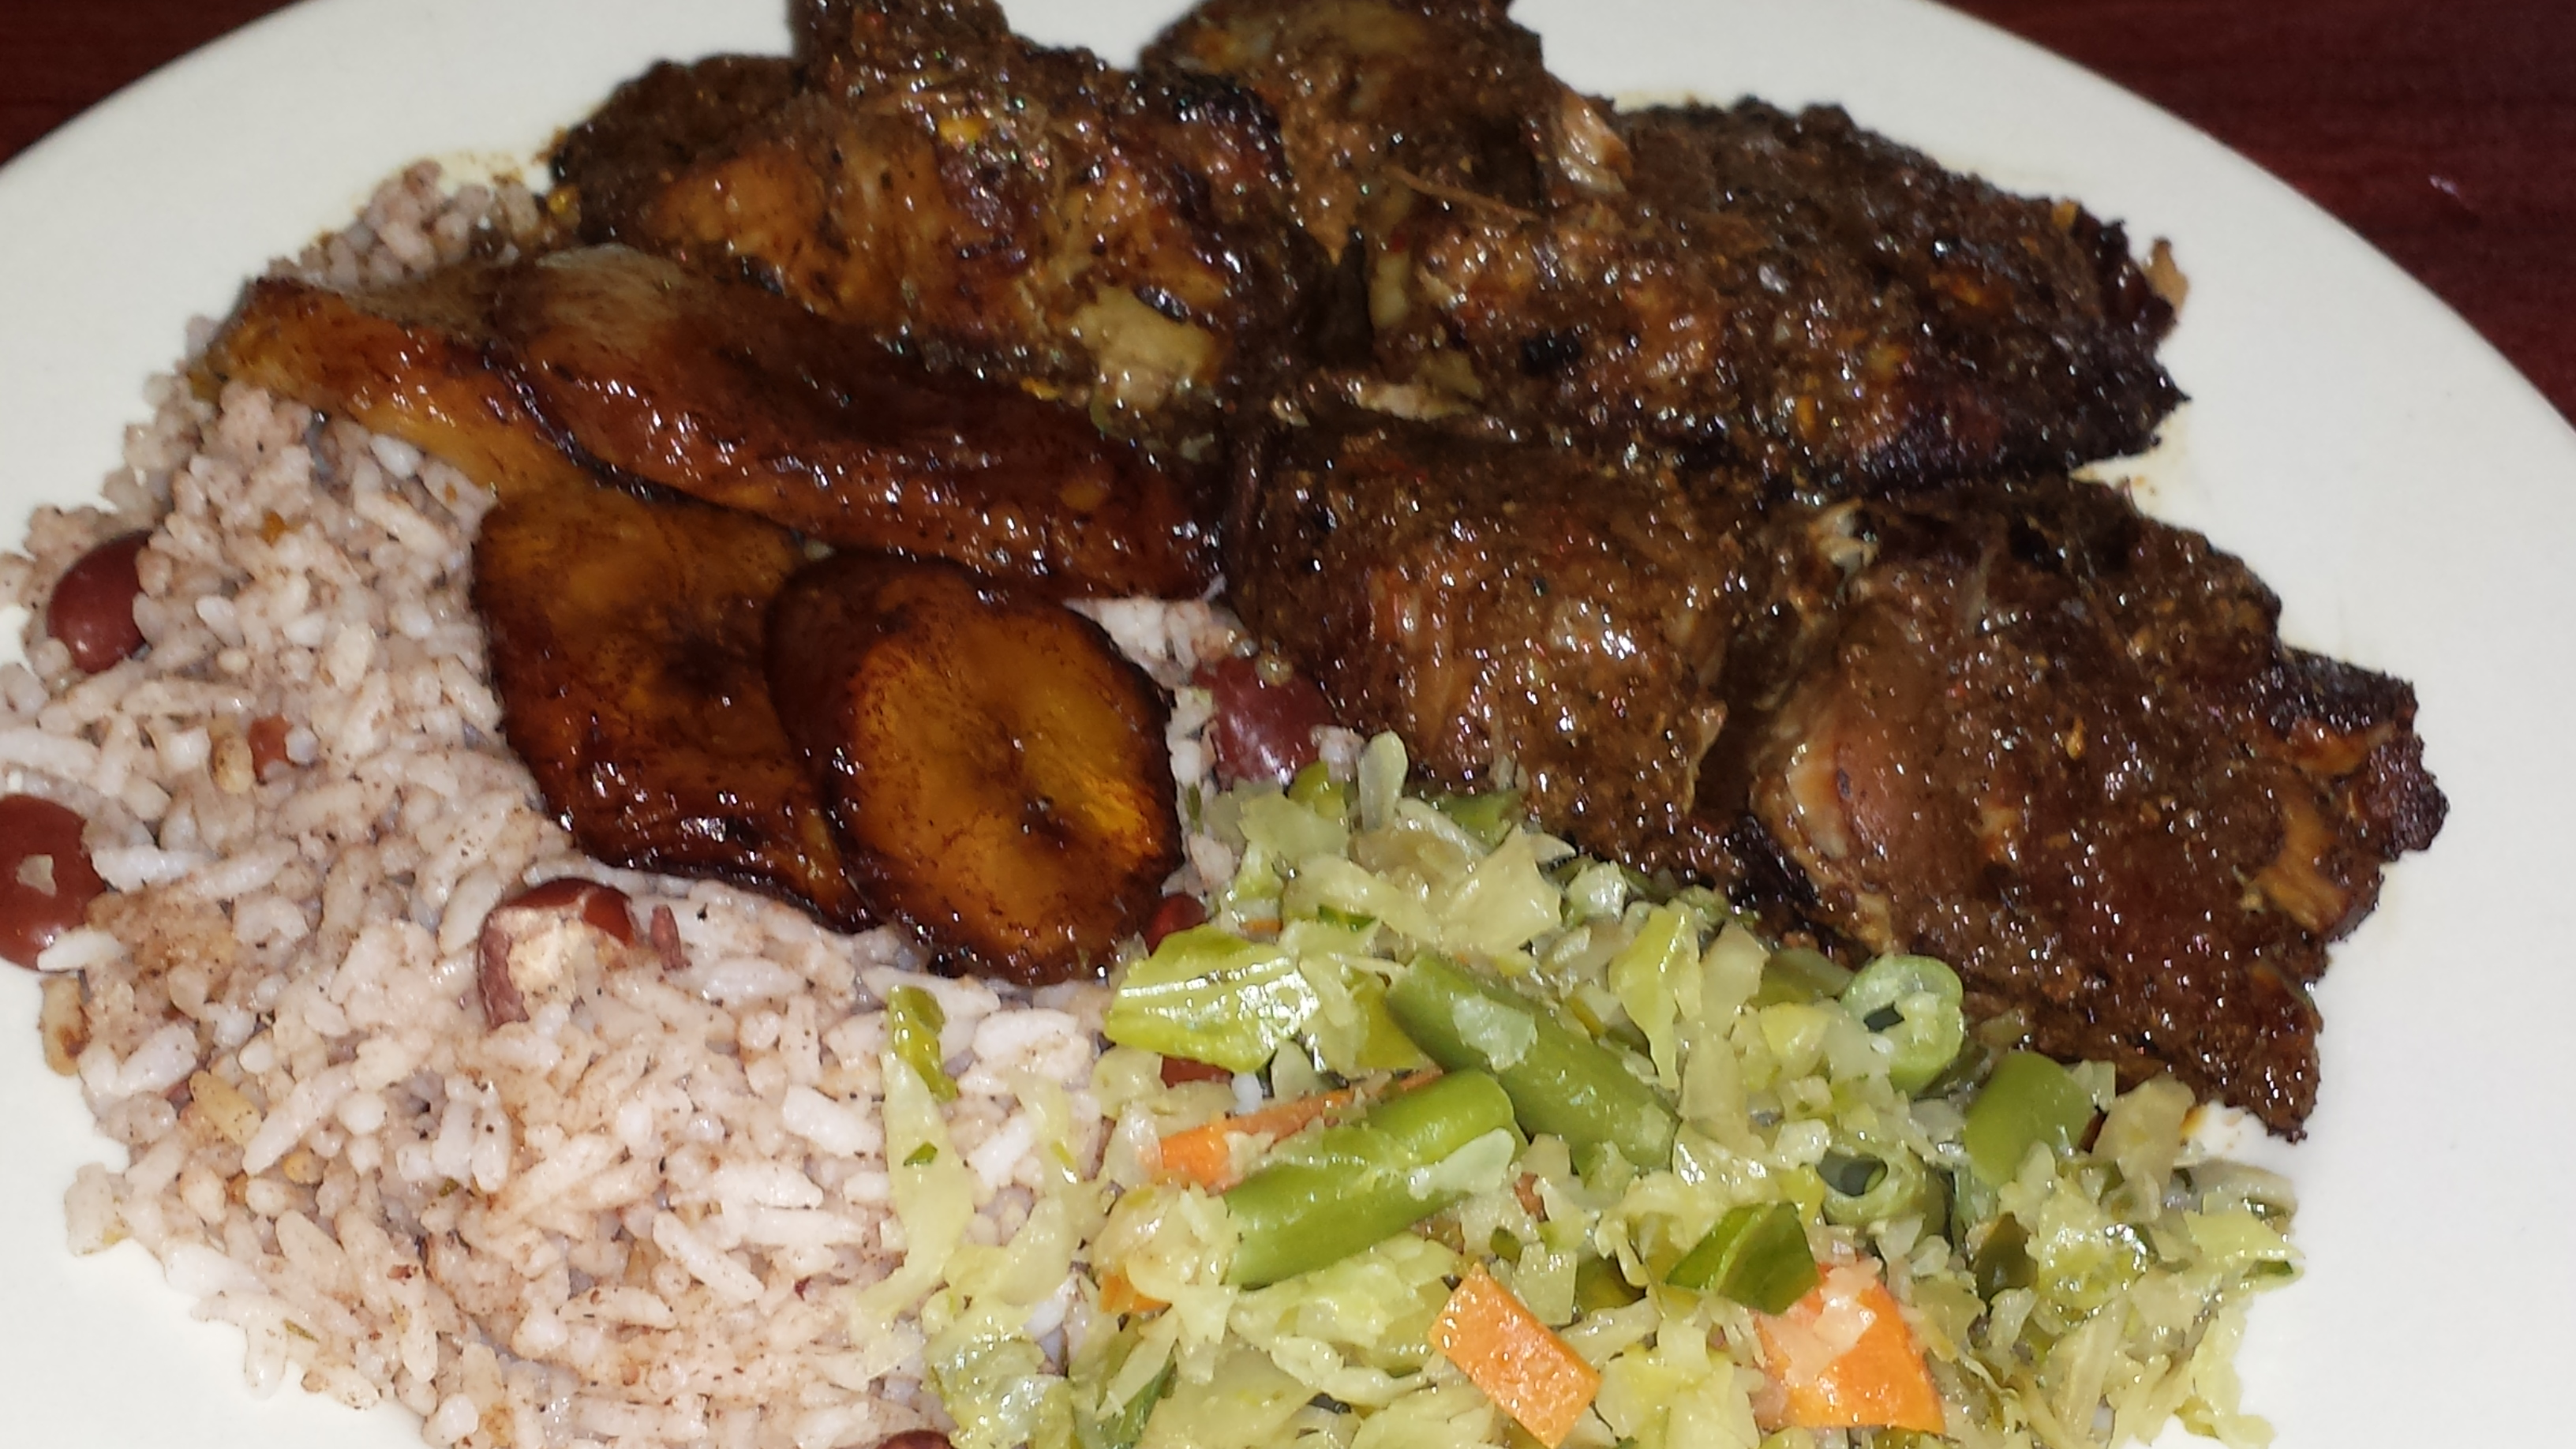 Jerk has its day at Little Island Cuisine | NJ SPICE